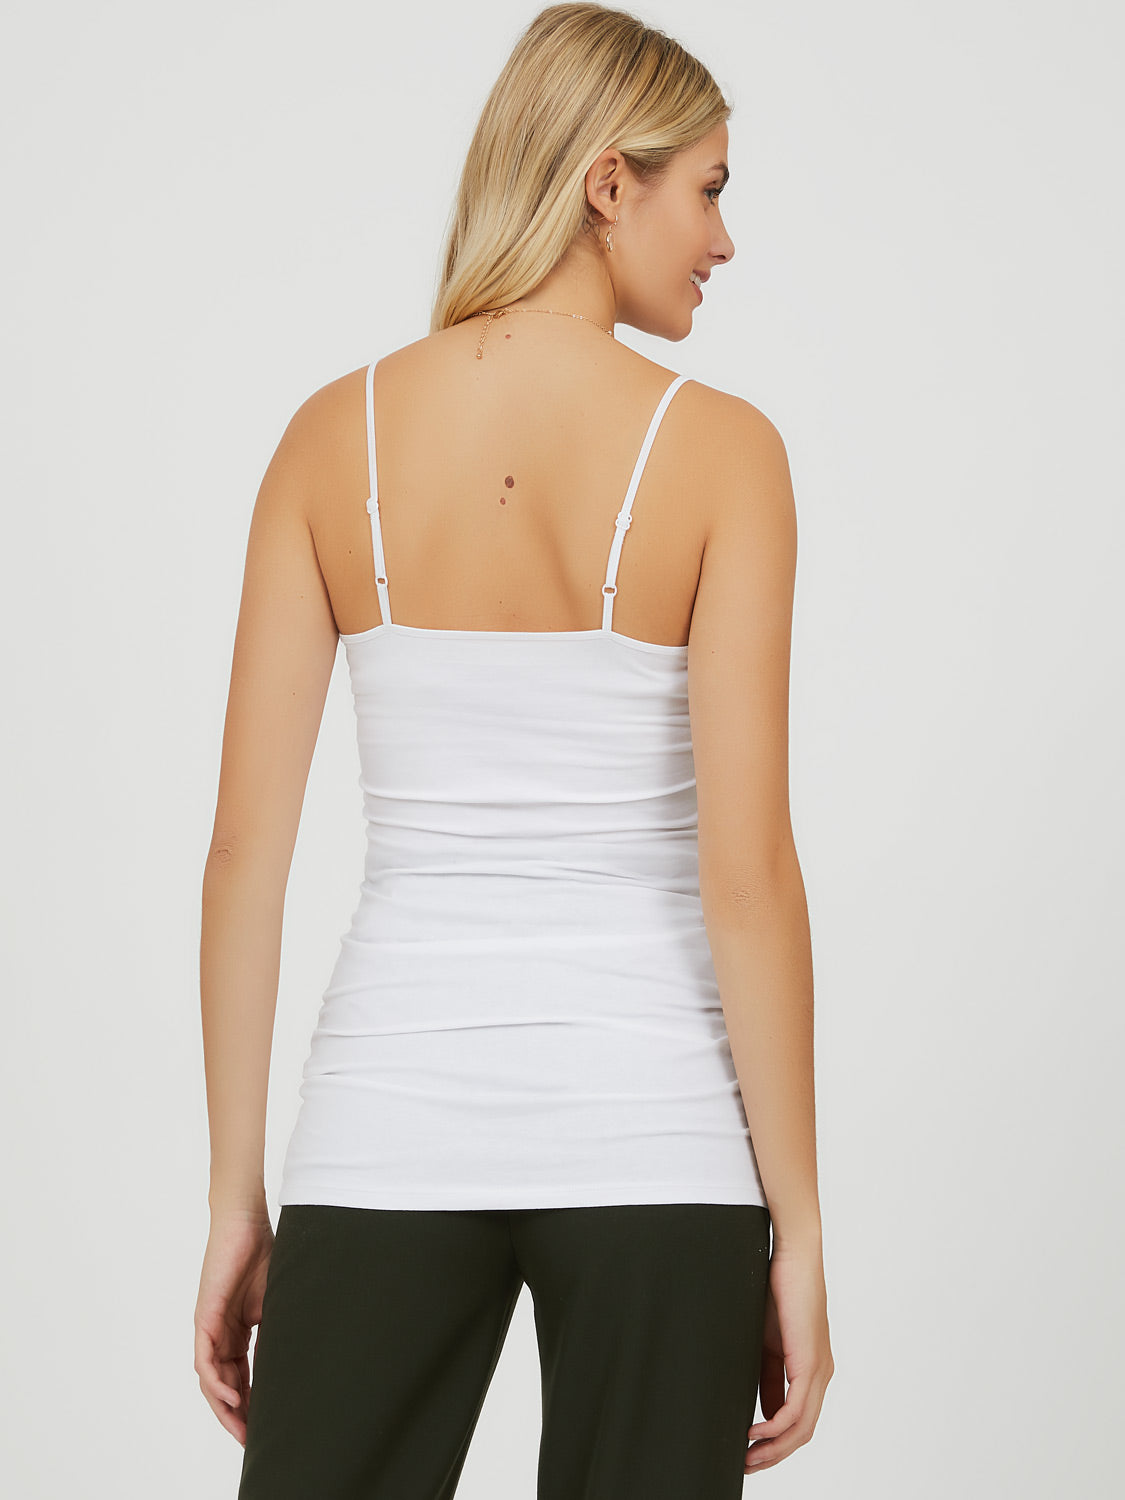 Adjustable Strap Spandex Camisole